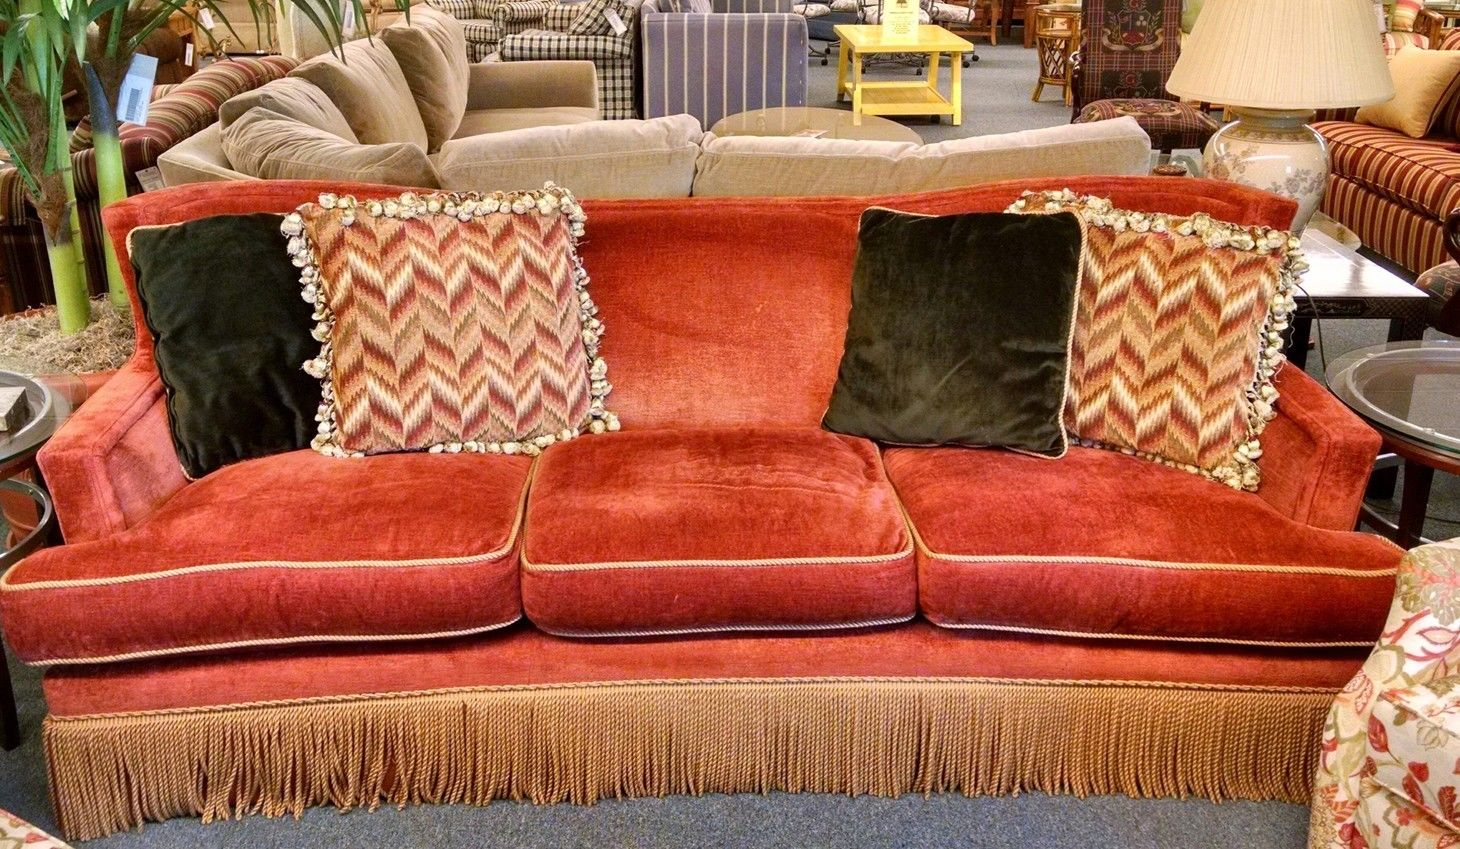 Rust Colored Sofa 1025theparty Com ~ Rust Colored Sectional Sofa